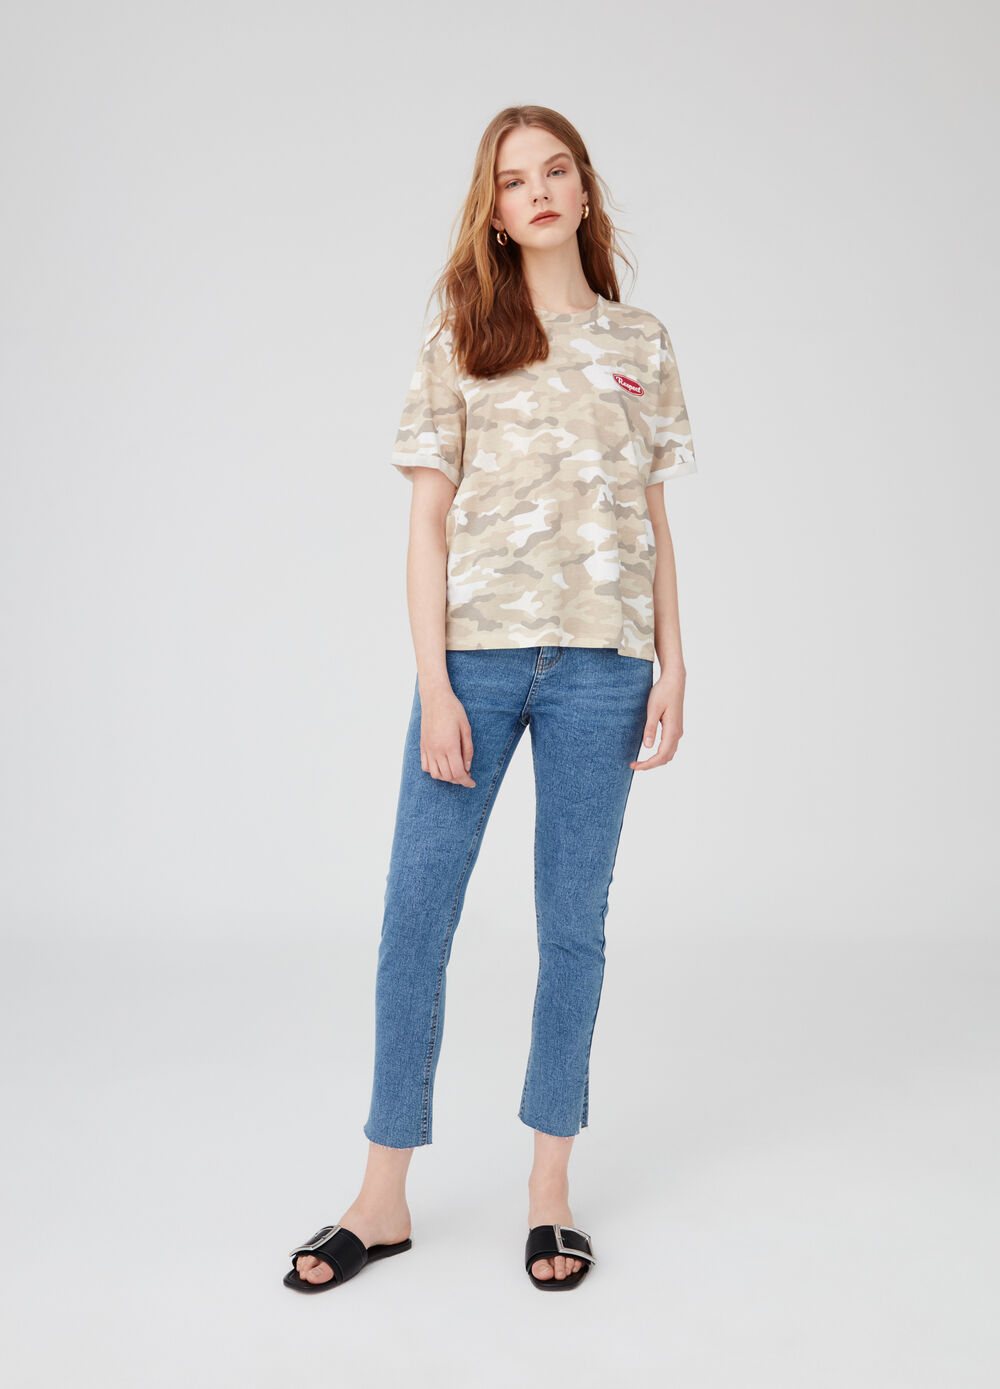 T-shirt in biocotton camouflage Earth Day